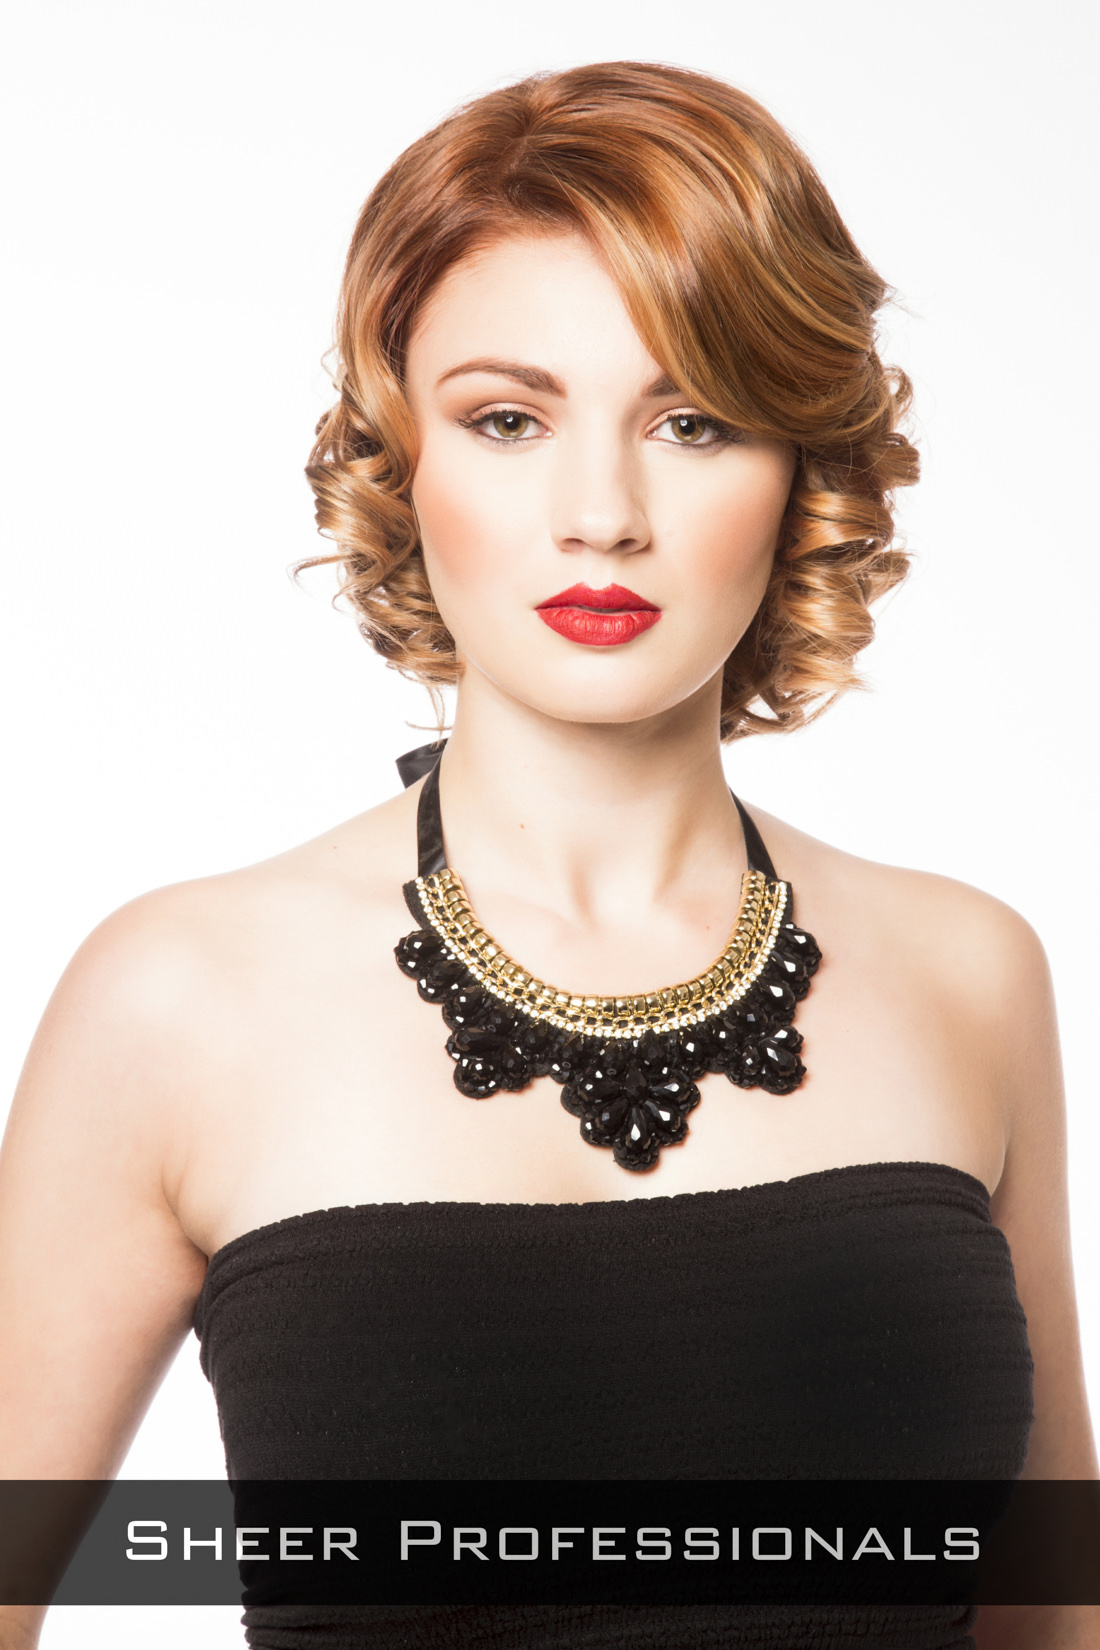 Short-Hairstyle-with-Curls-for-Round-Faces